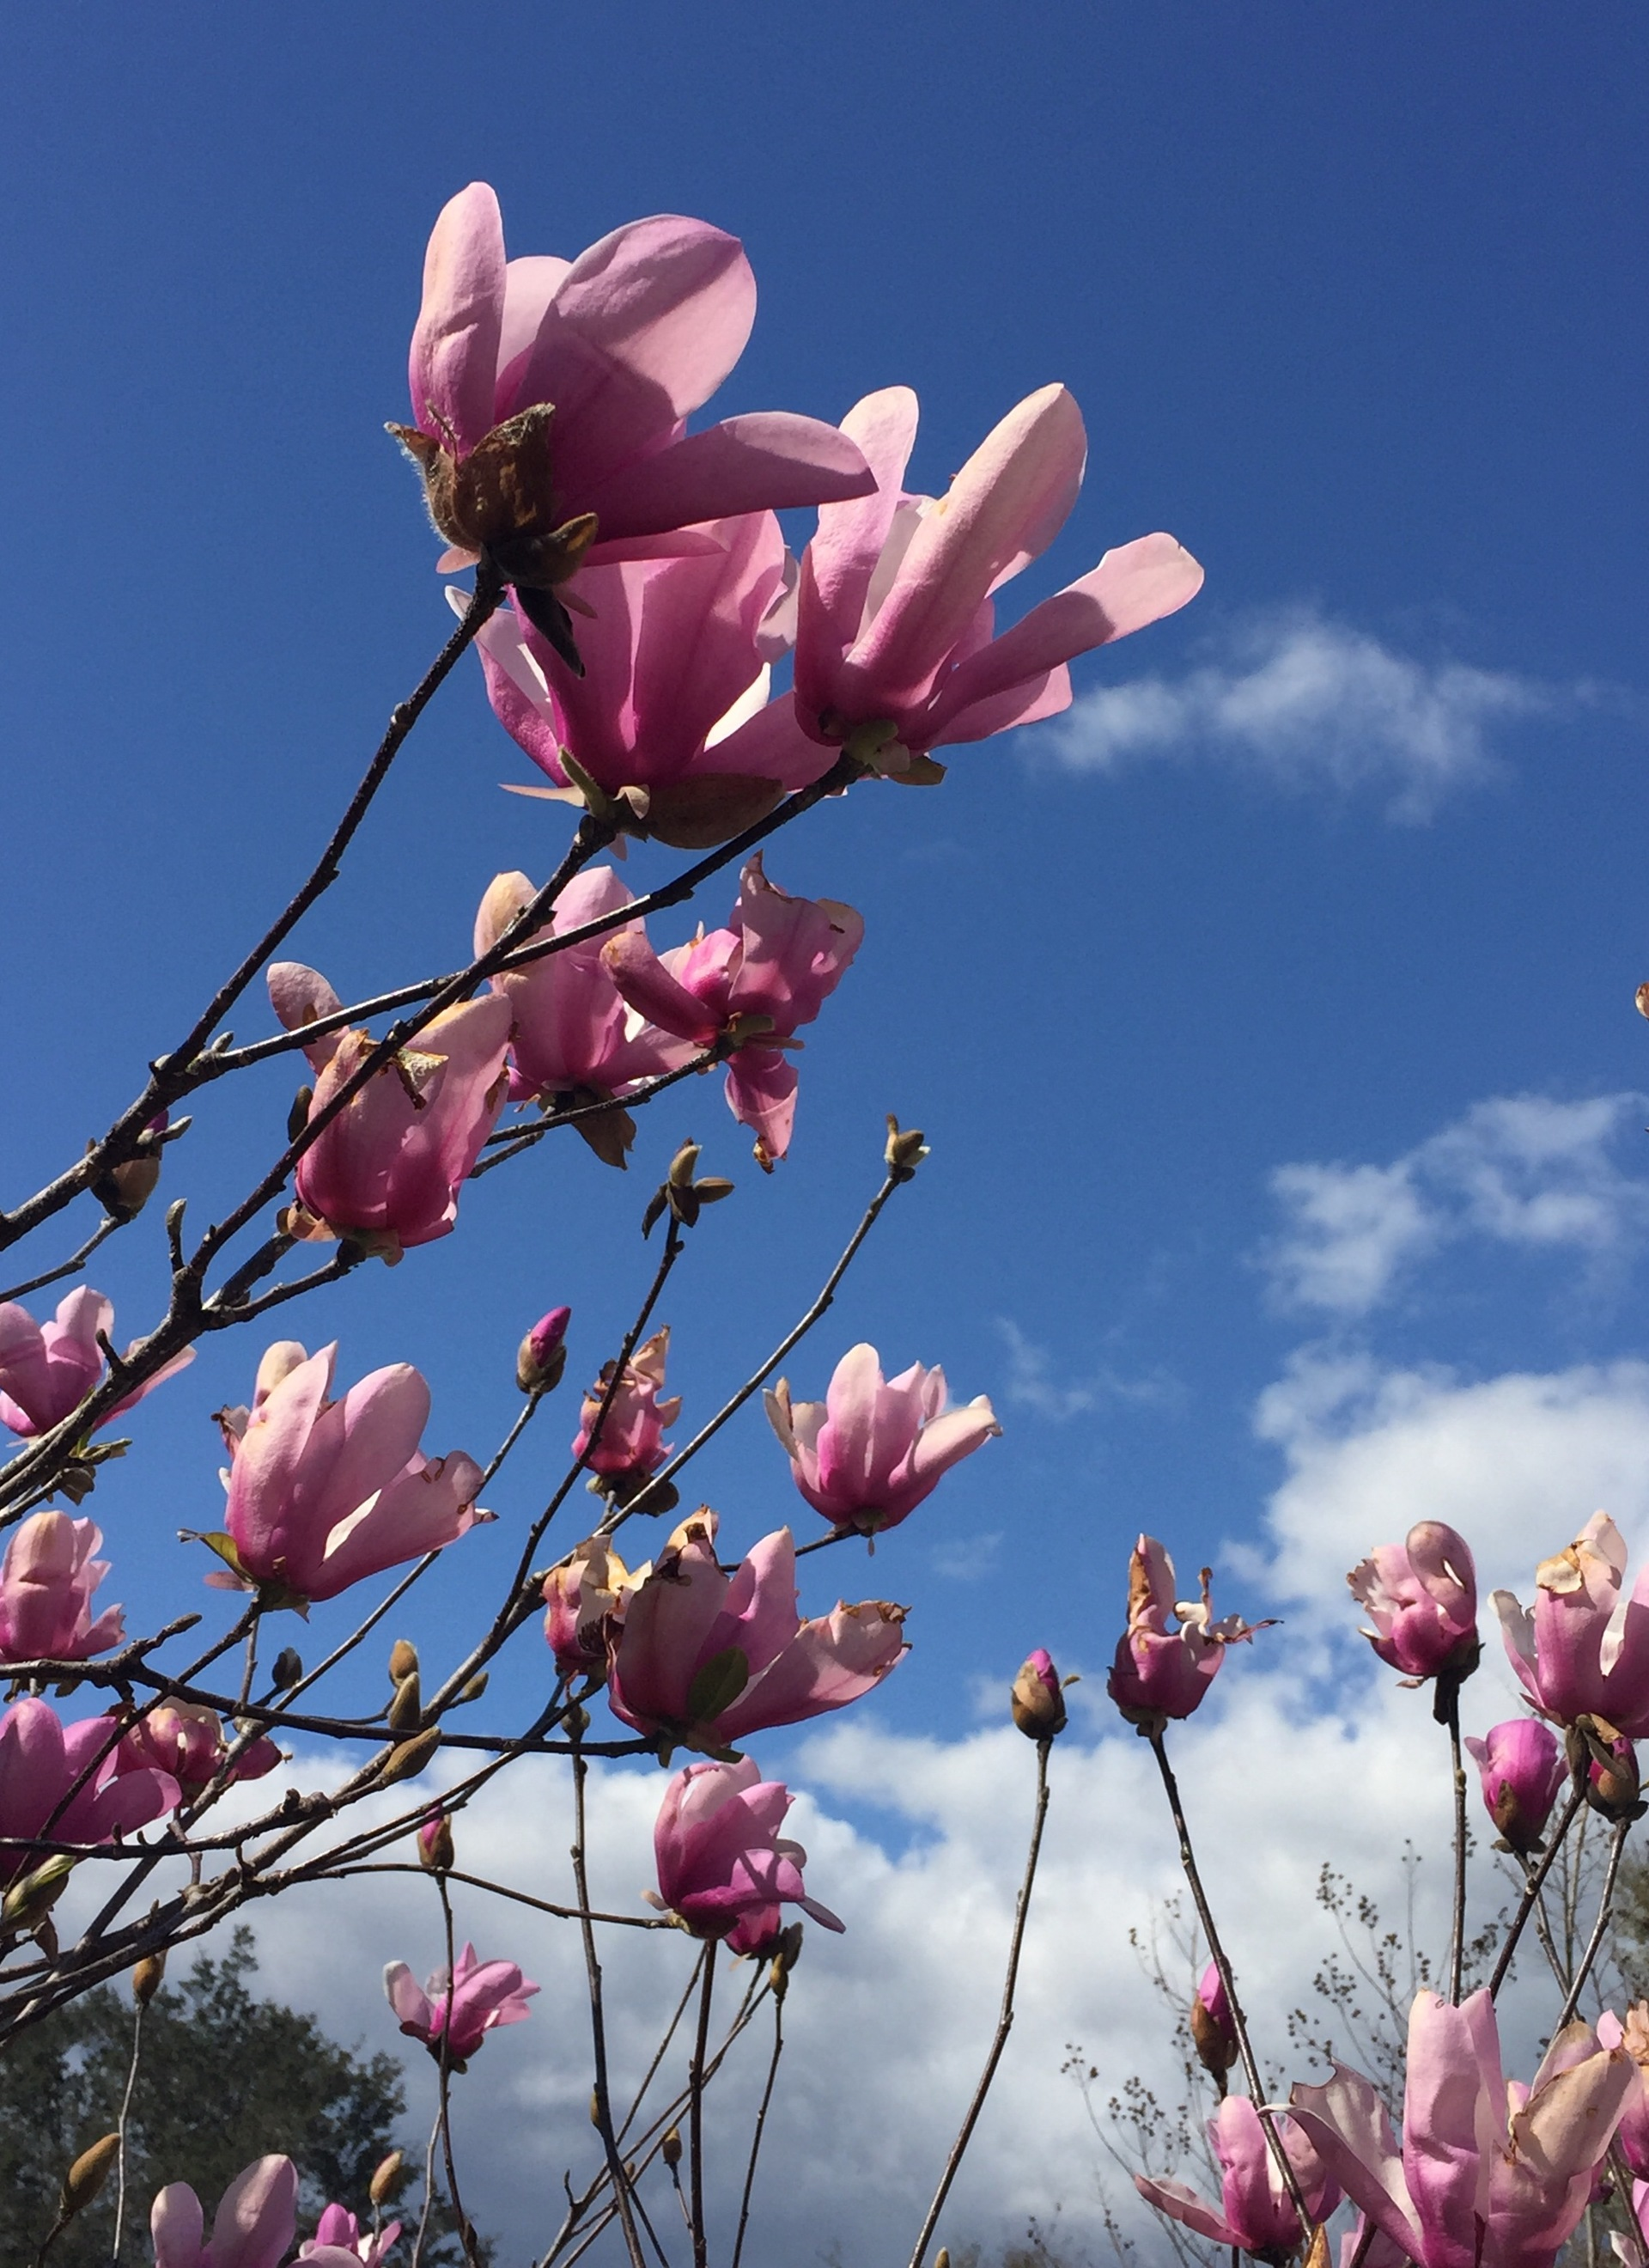 Chinese magnolias early spring bloomer